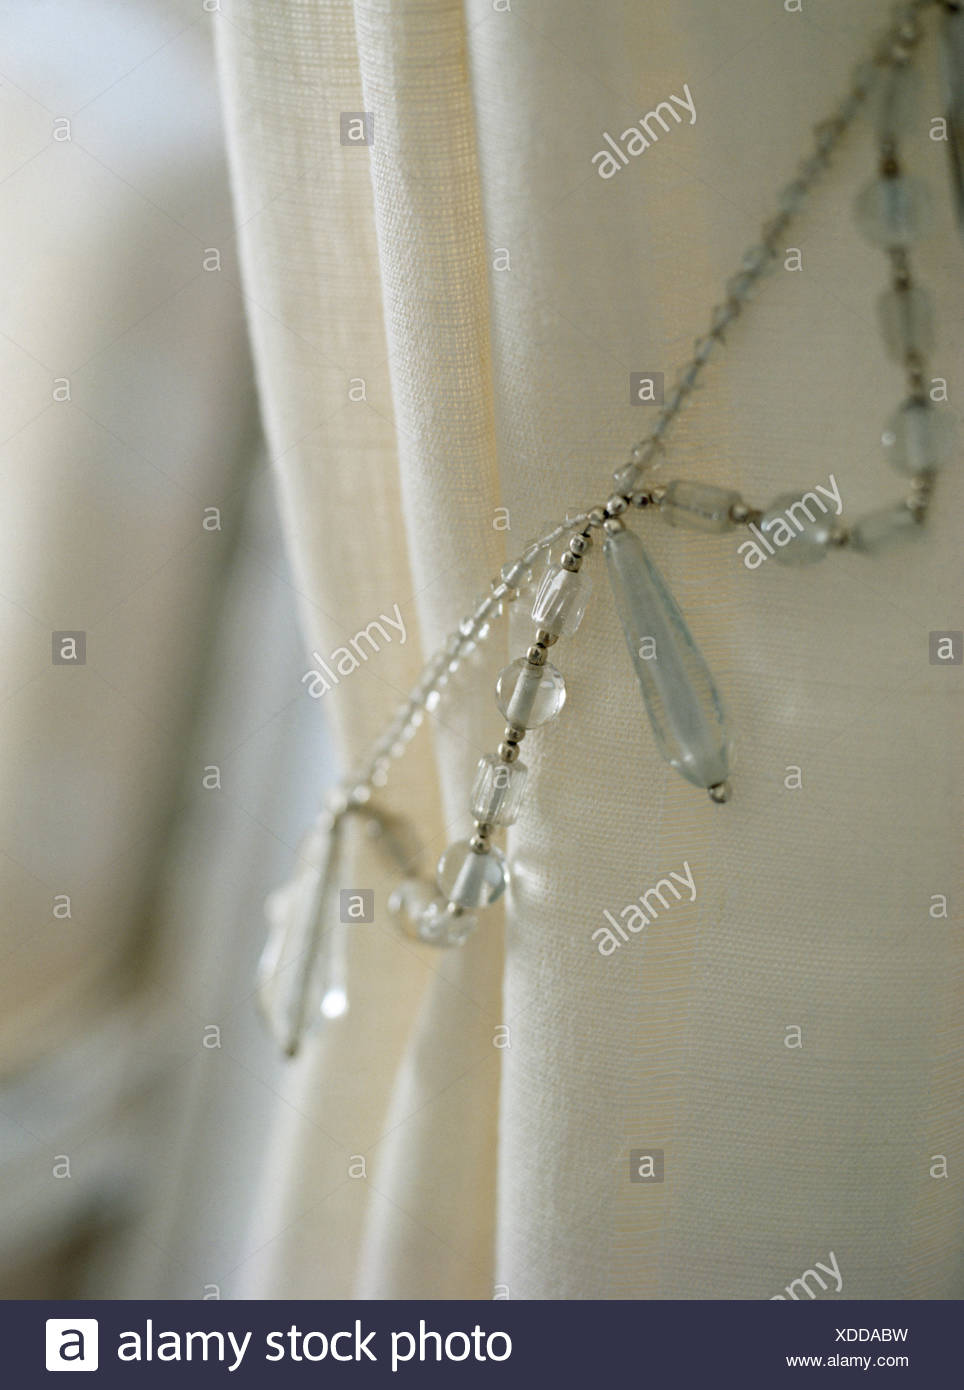 Close-up of white curtain with beaded tie back - Stock Image